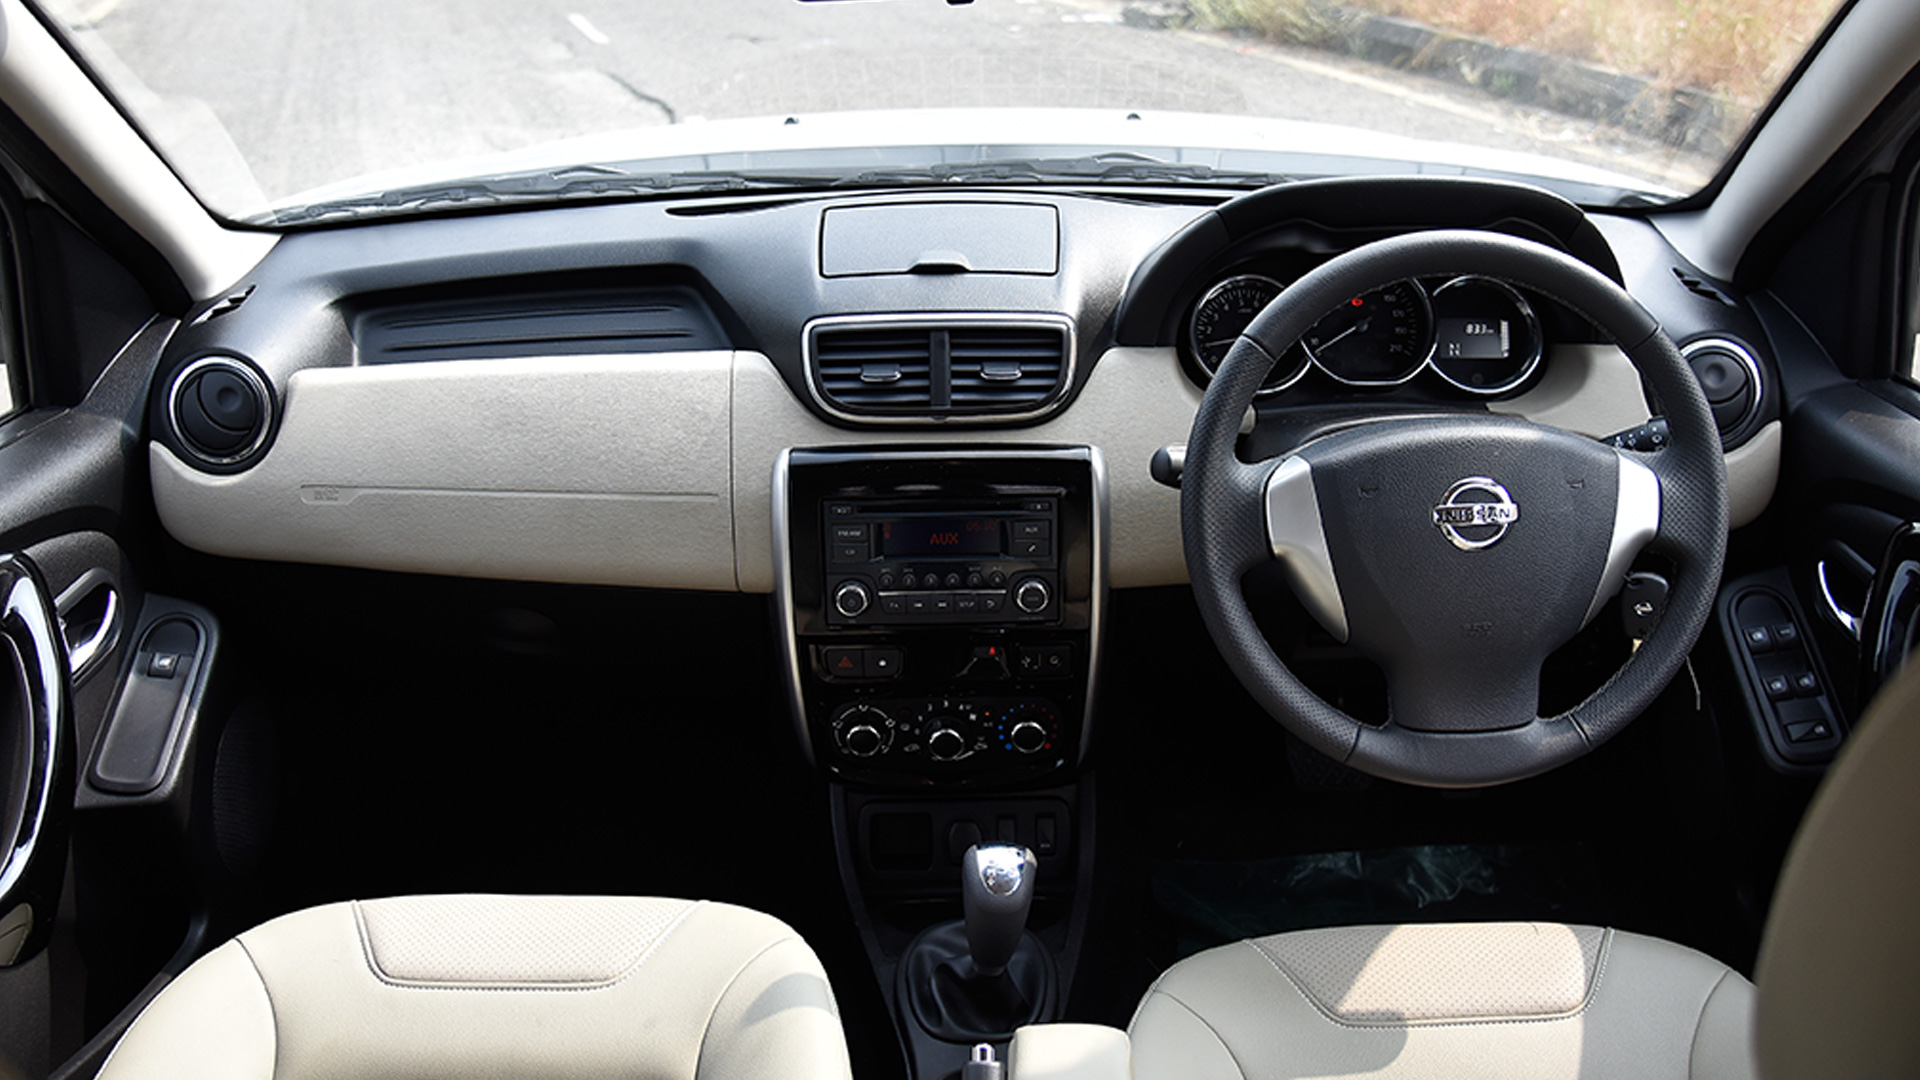 nissan terrano 2017 price mileage reviews specification gallery overdrive. Black Bedroom Furniture Sets. Home Design Ideas